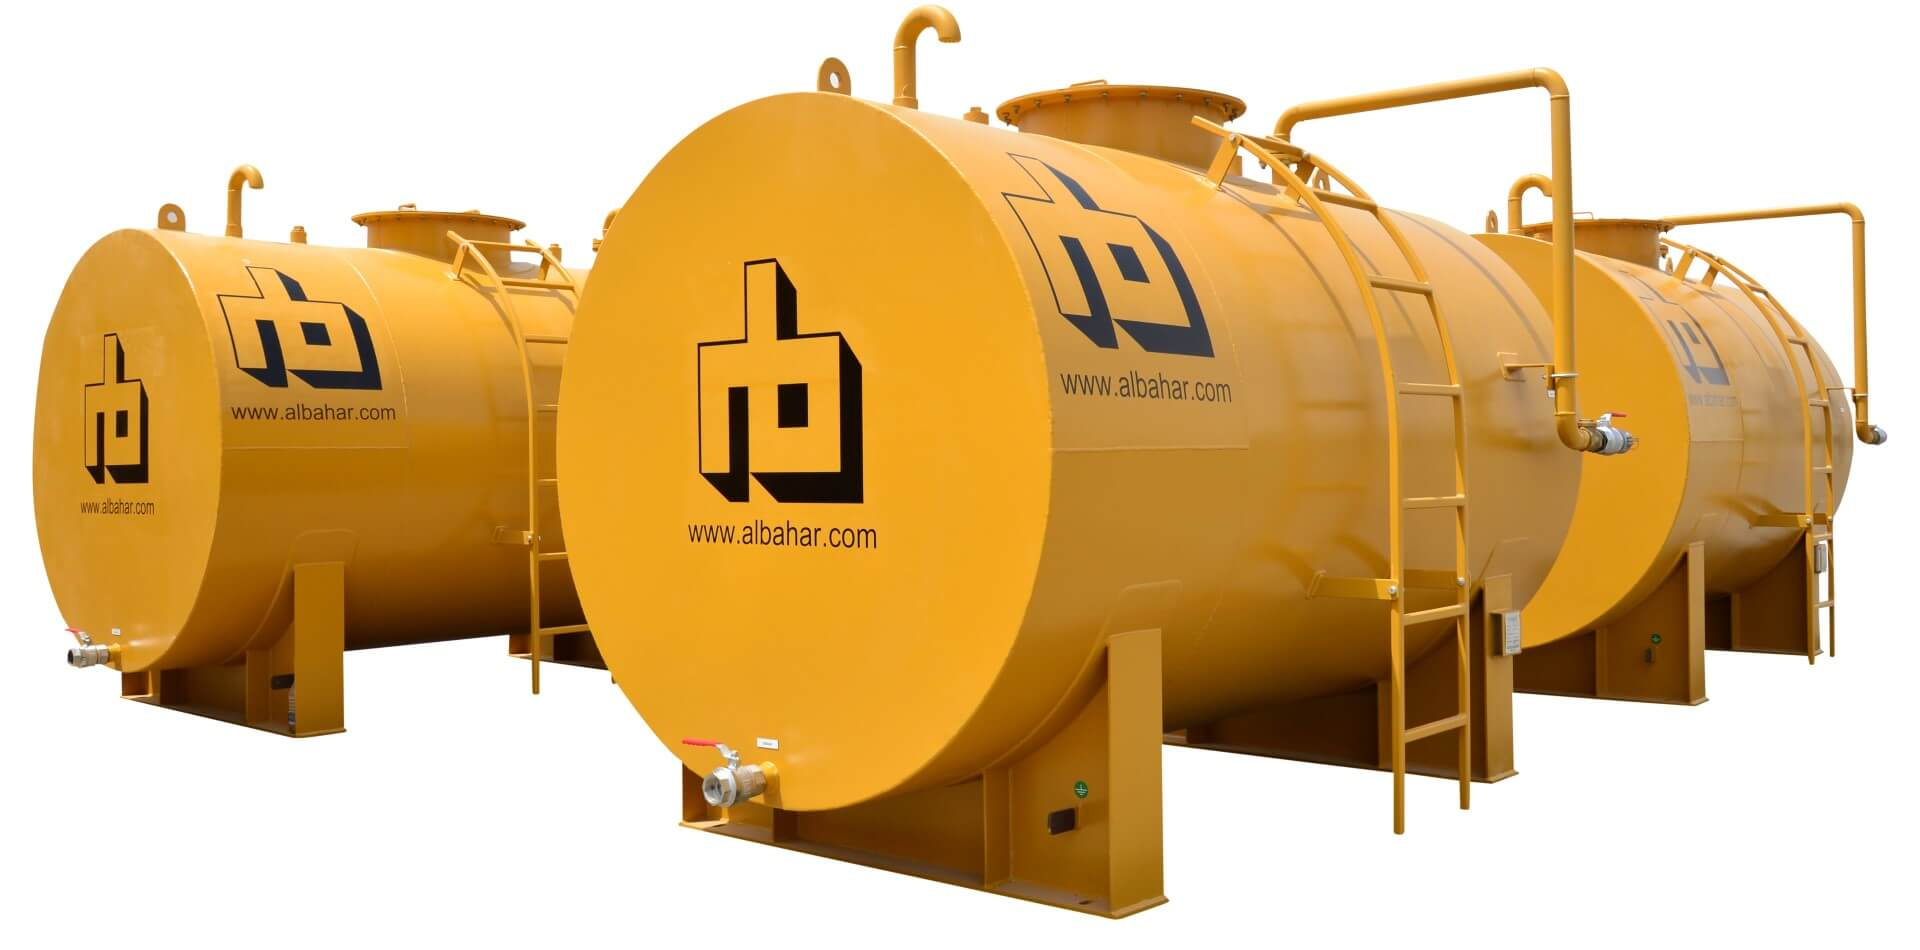 fuel storage tanks cylindrical - Fuel Storage Tanks